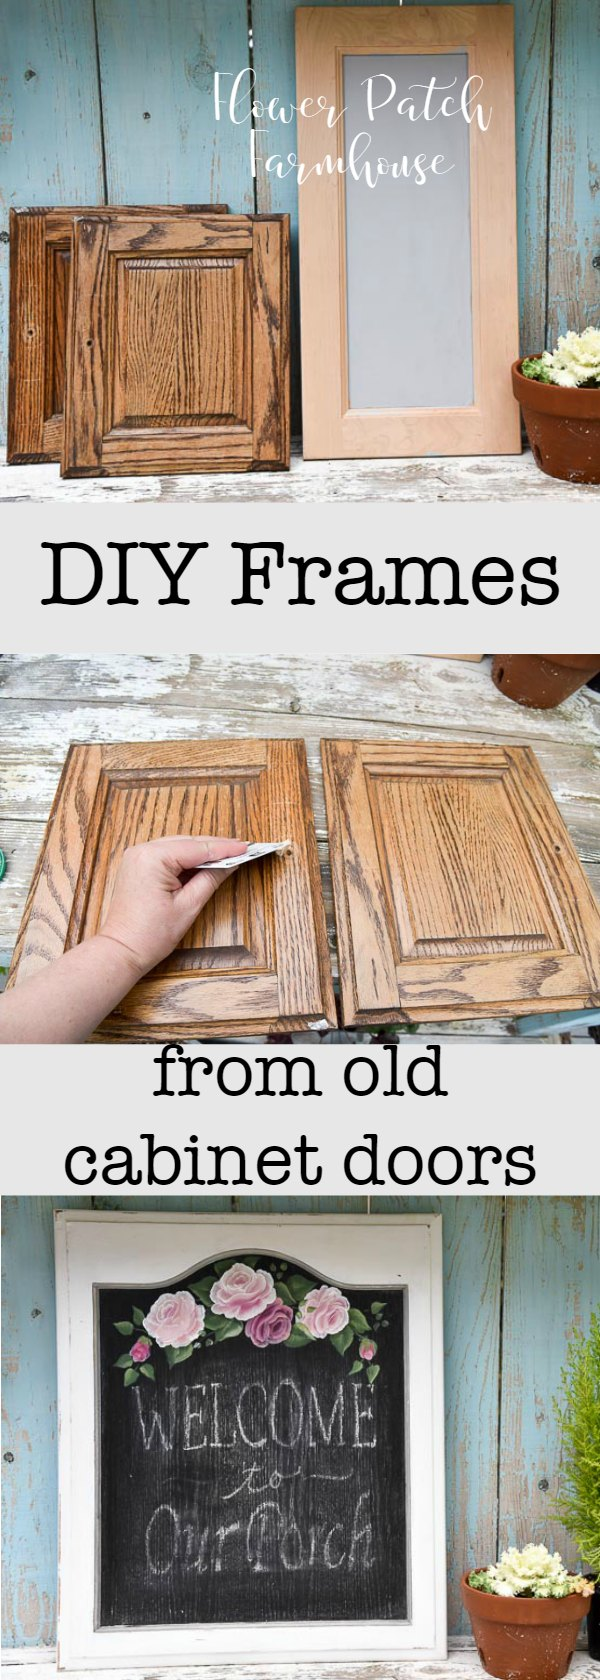 DIY Frames From Cabinet Doors. Up Cycle Used Cabinet Doors Into Fun Frames  For